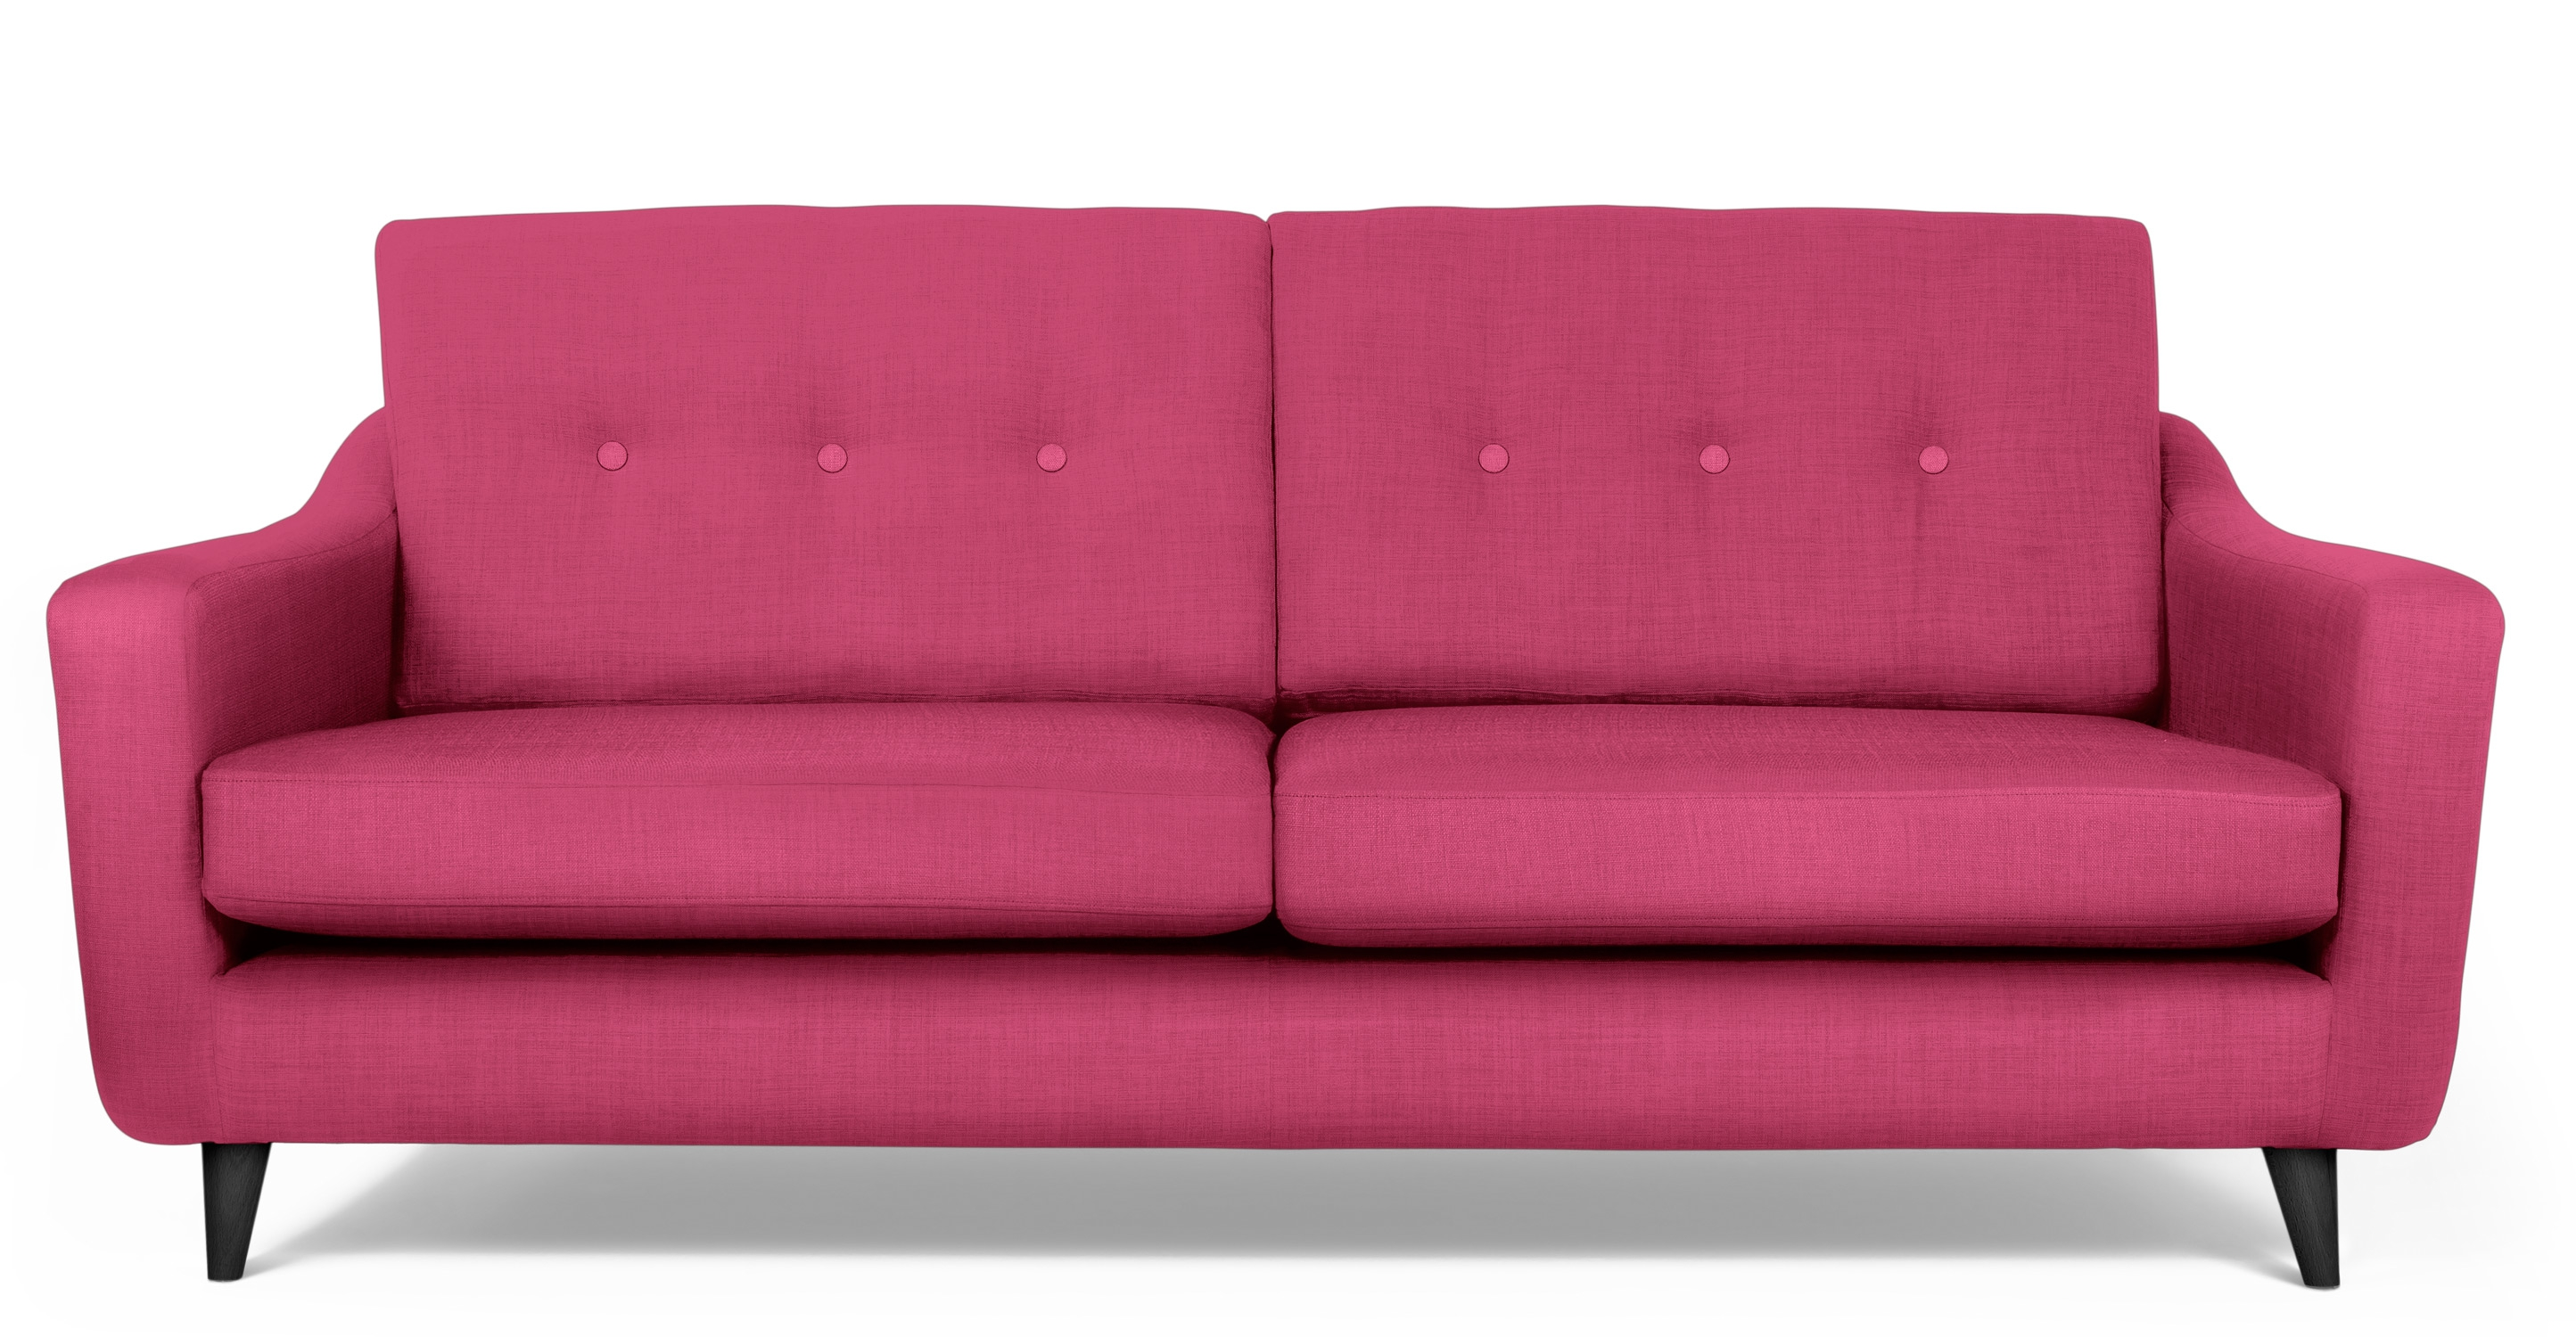 pink sofa furniture century prices costway kids armrest chair couch